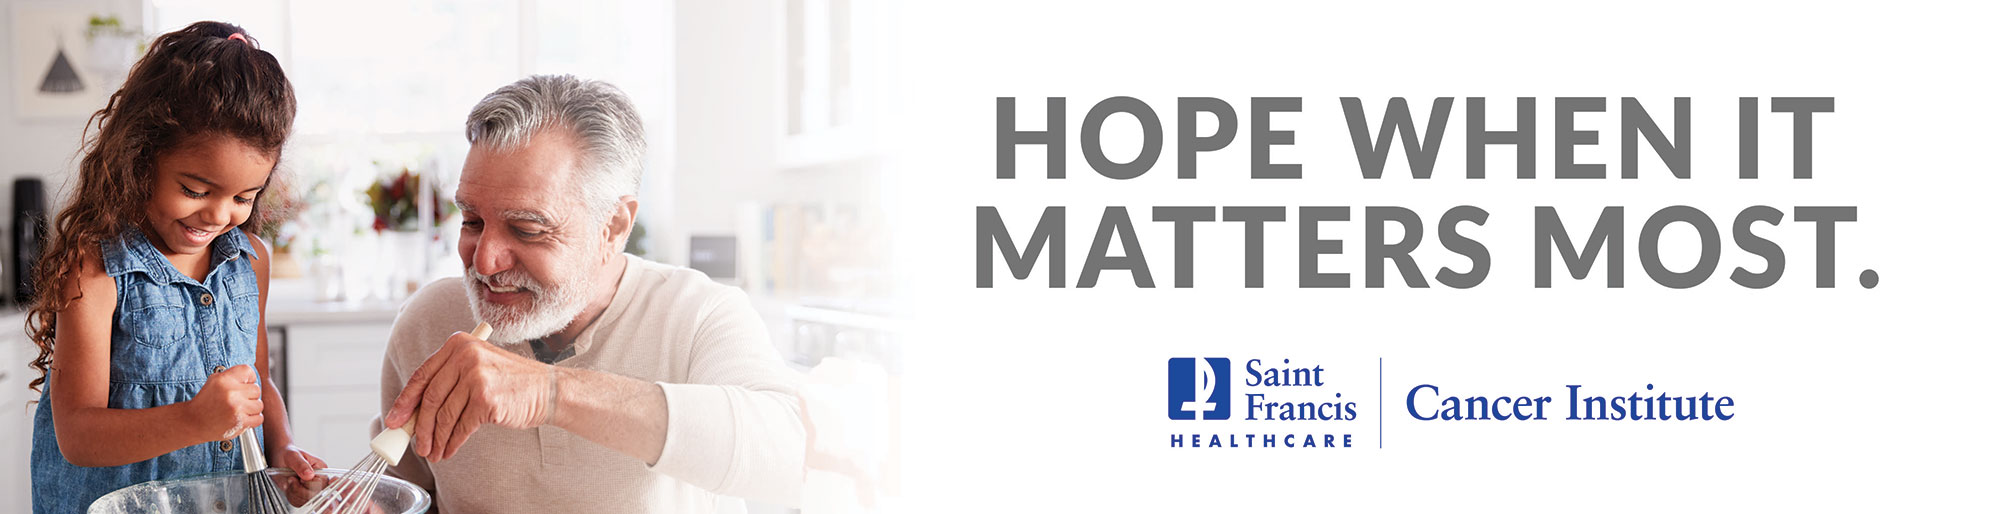 Saint Francis Cancer Services - Hope When it Matters Most